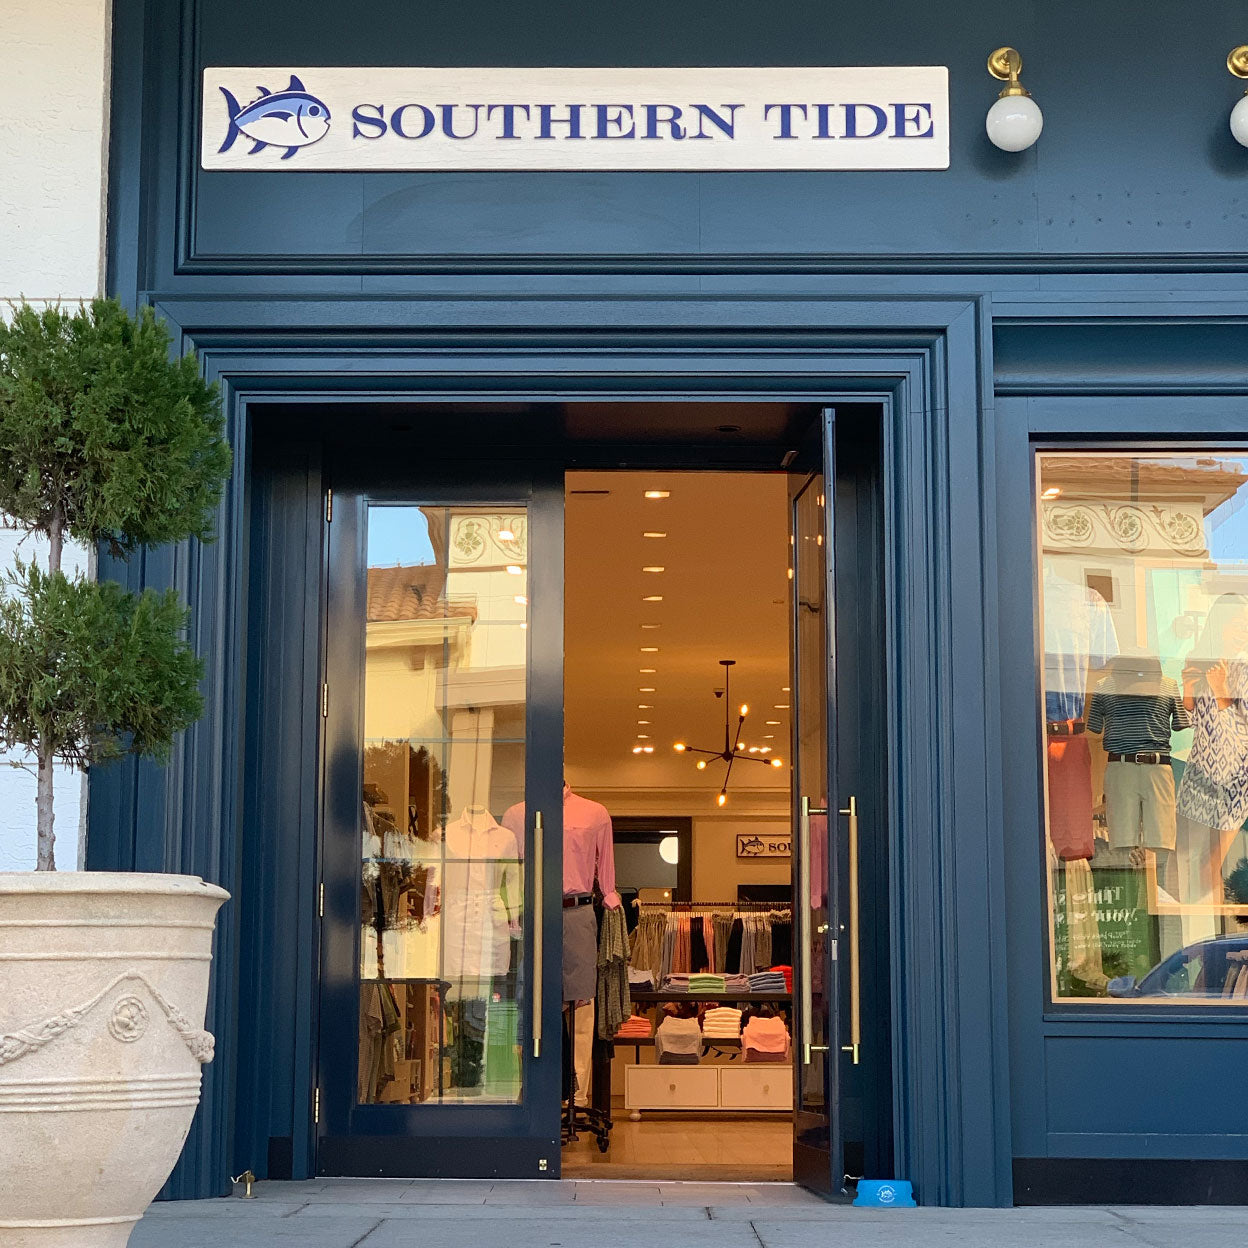 Southern Tide store front image